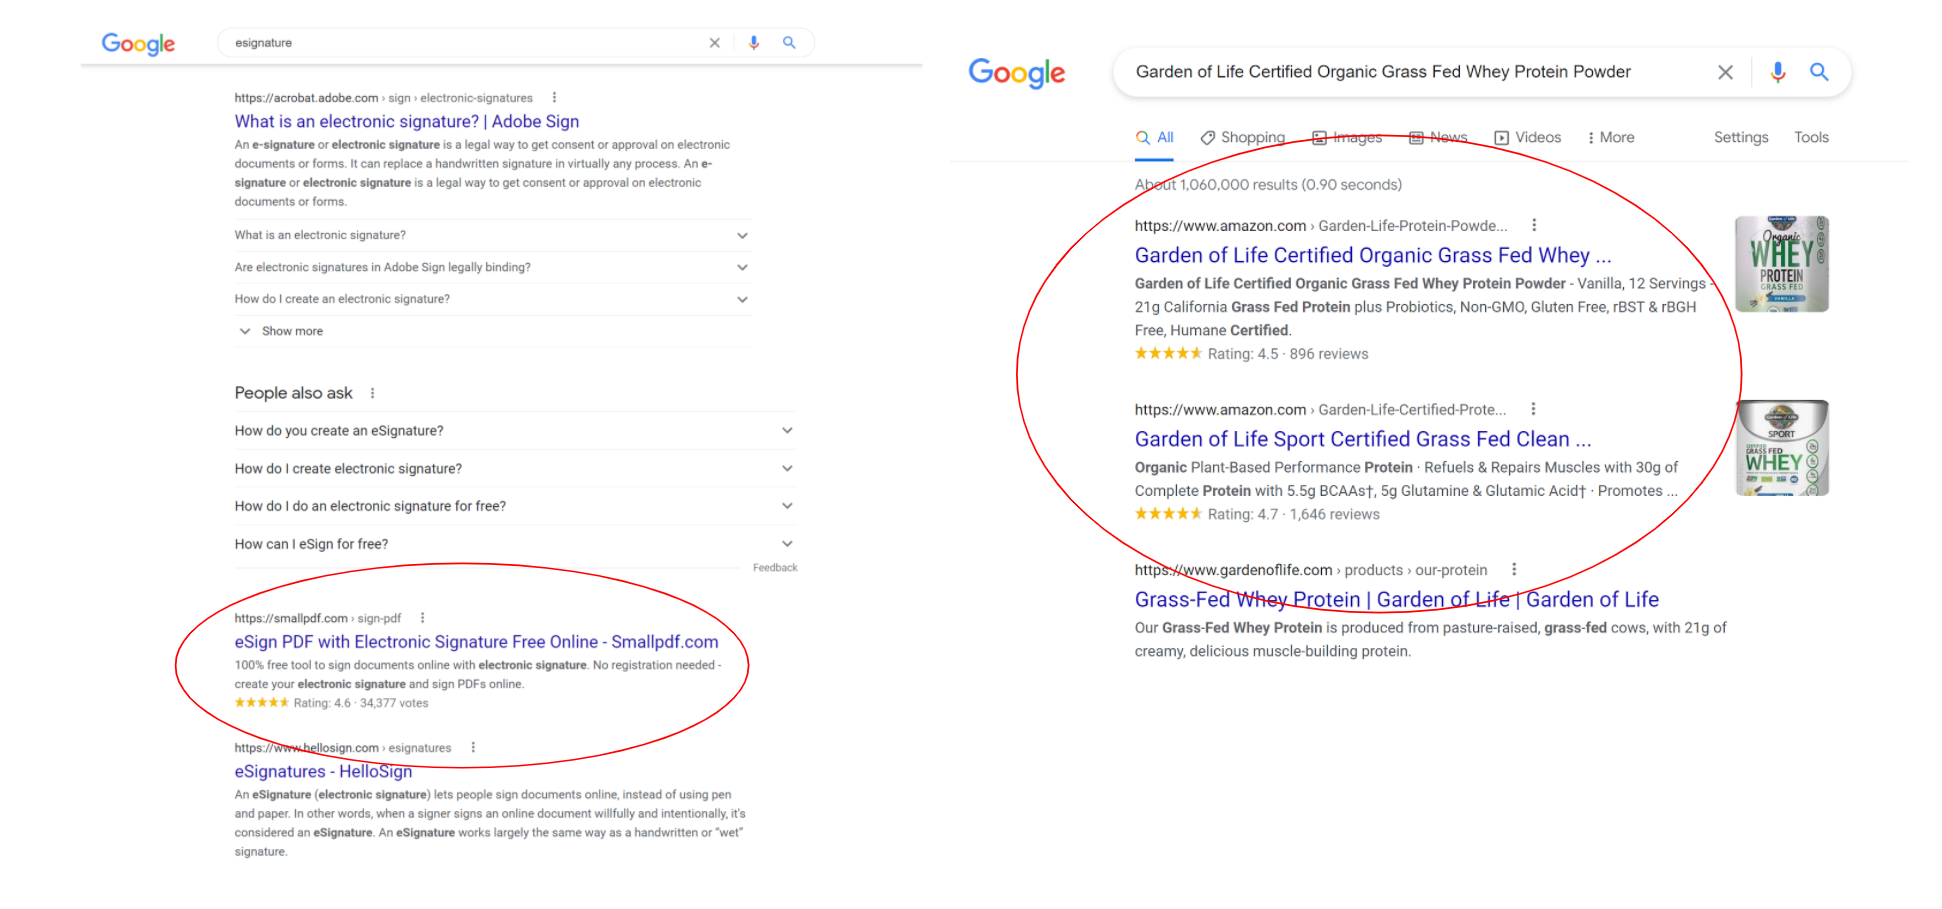 Review stars within the SERP results